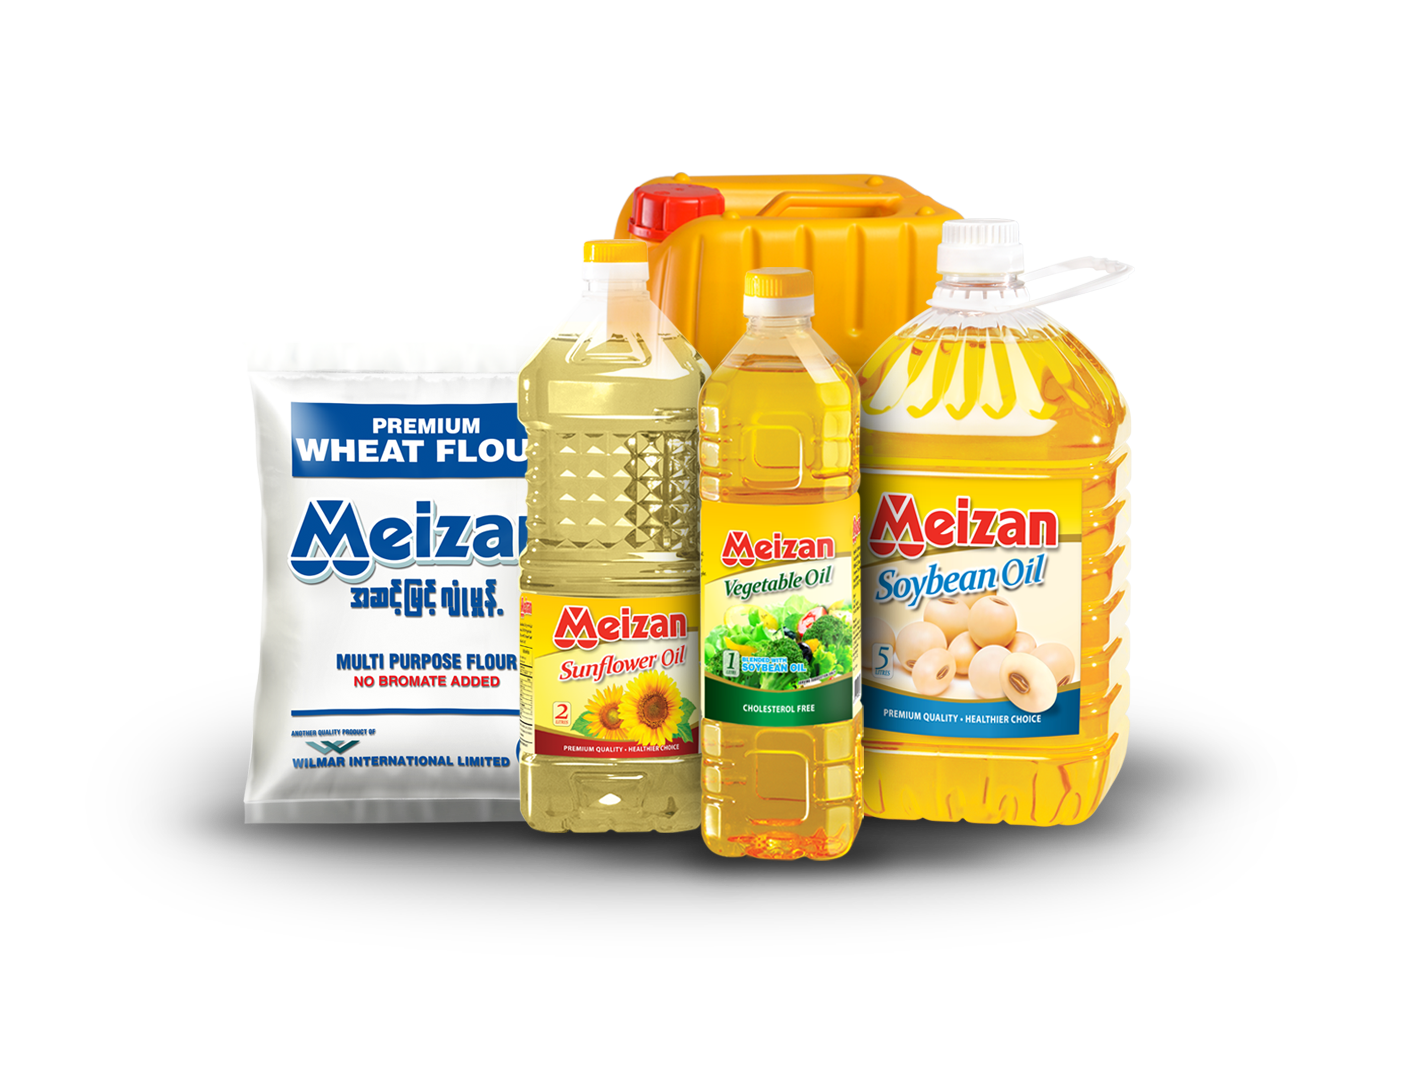 Meizan Distribution